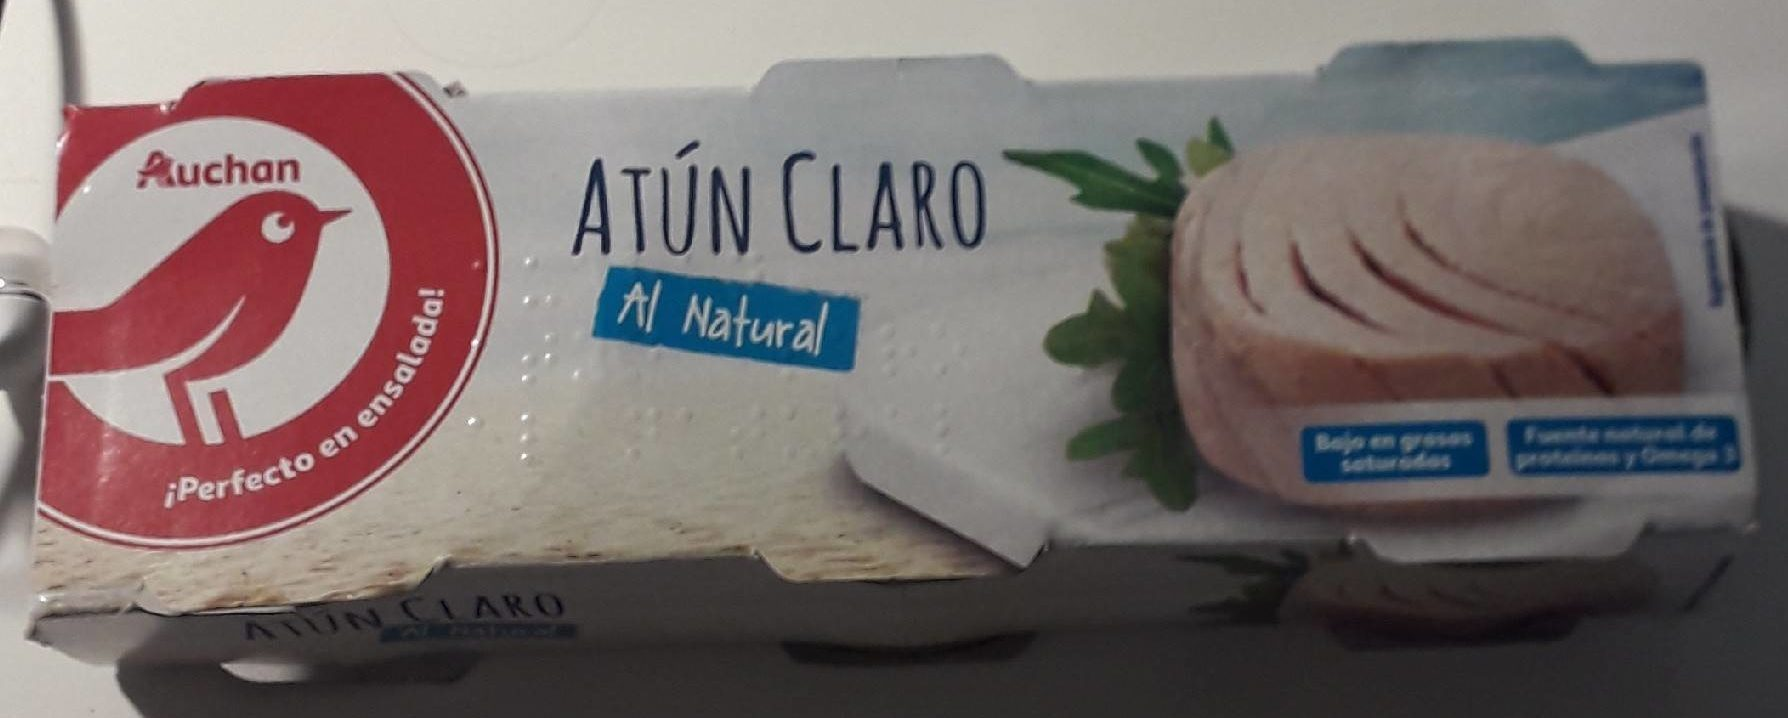 Atún claro al natural - Producte